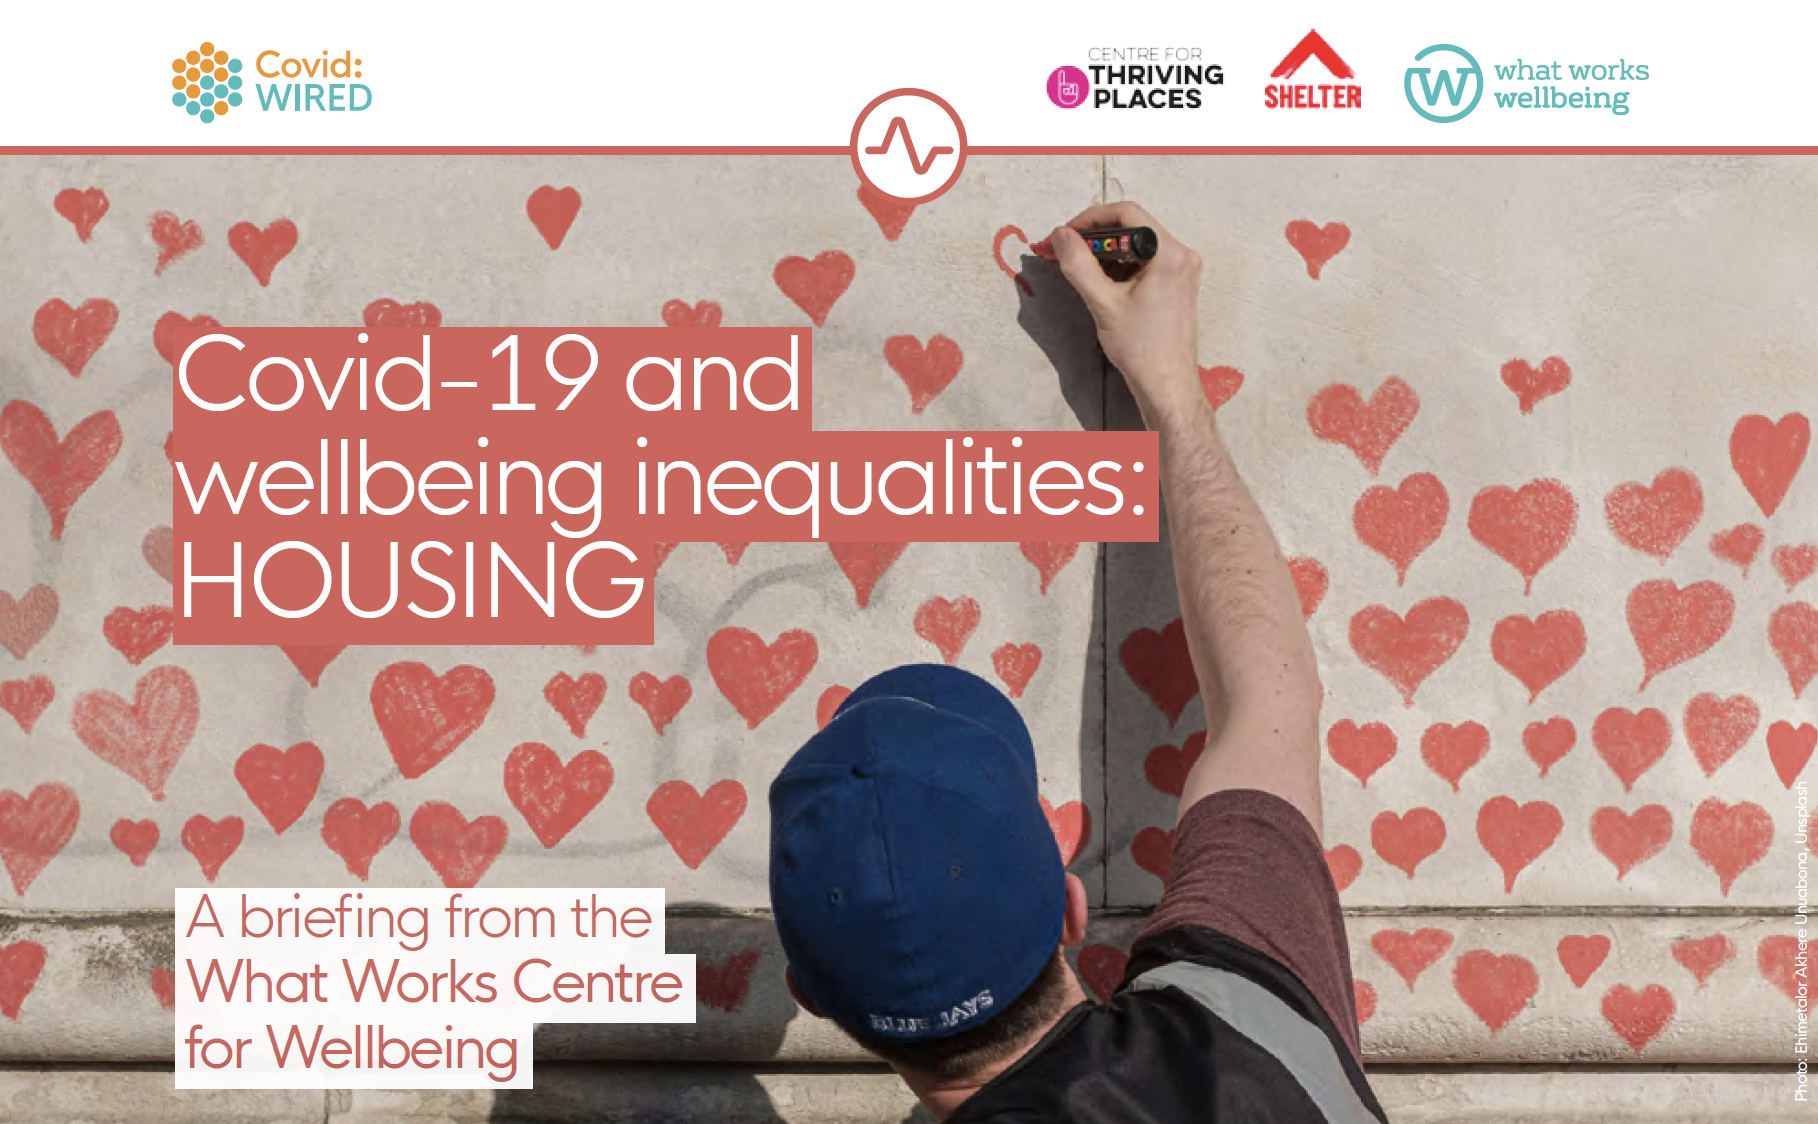 Covid-19 and wellbeing inequalities: Housing